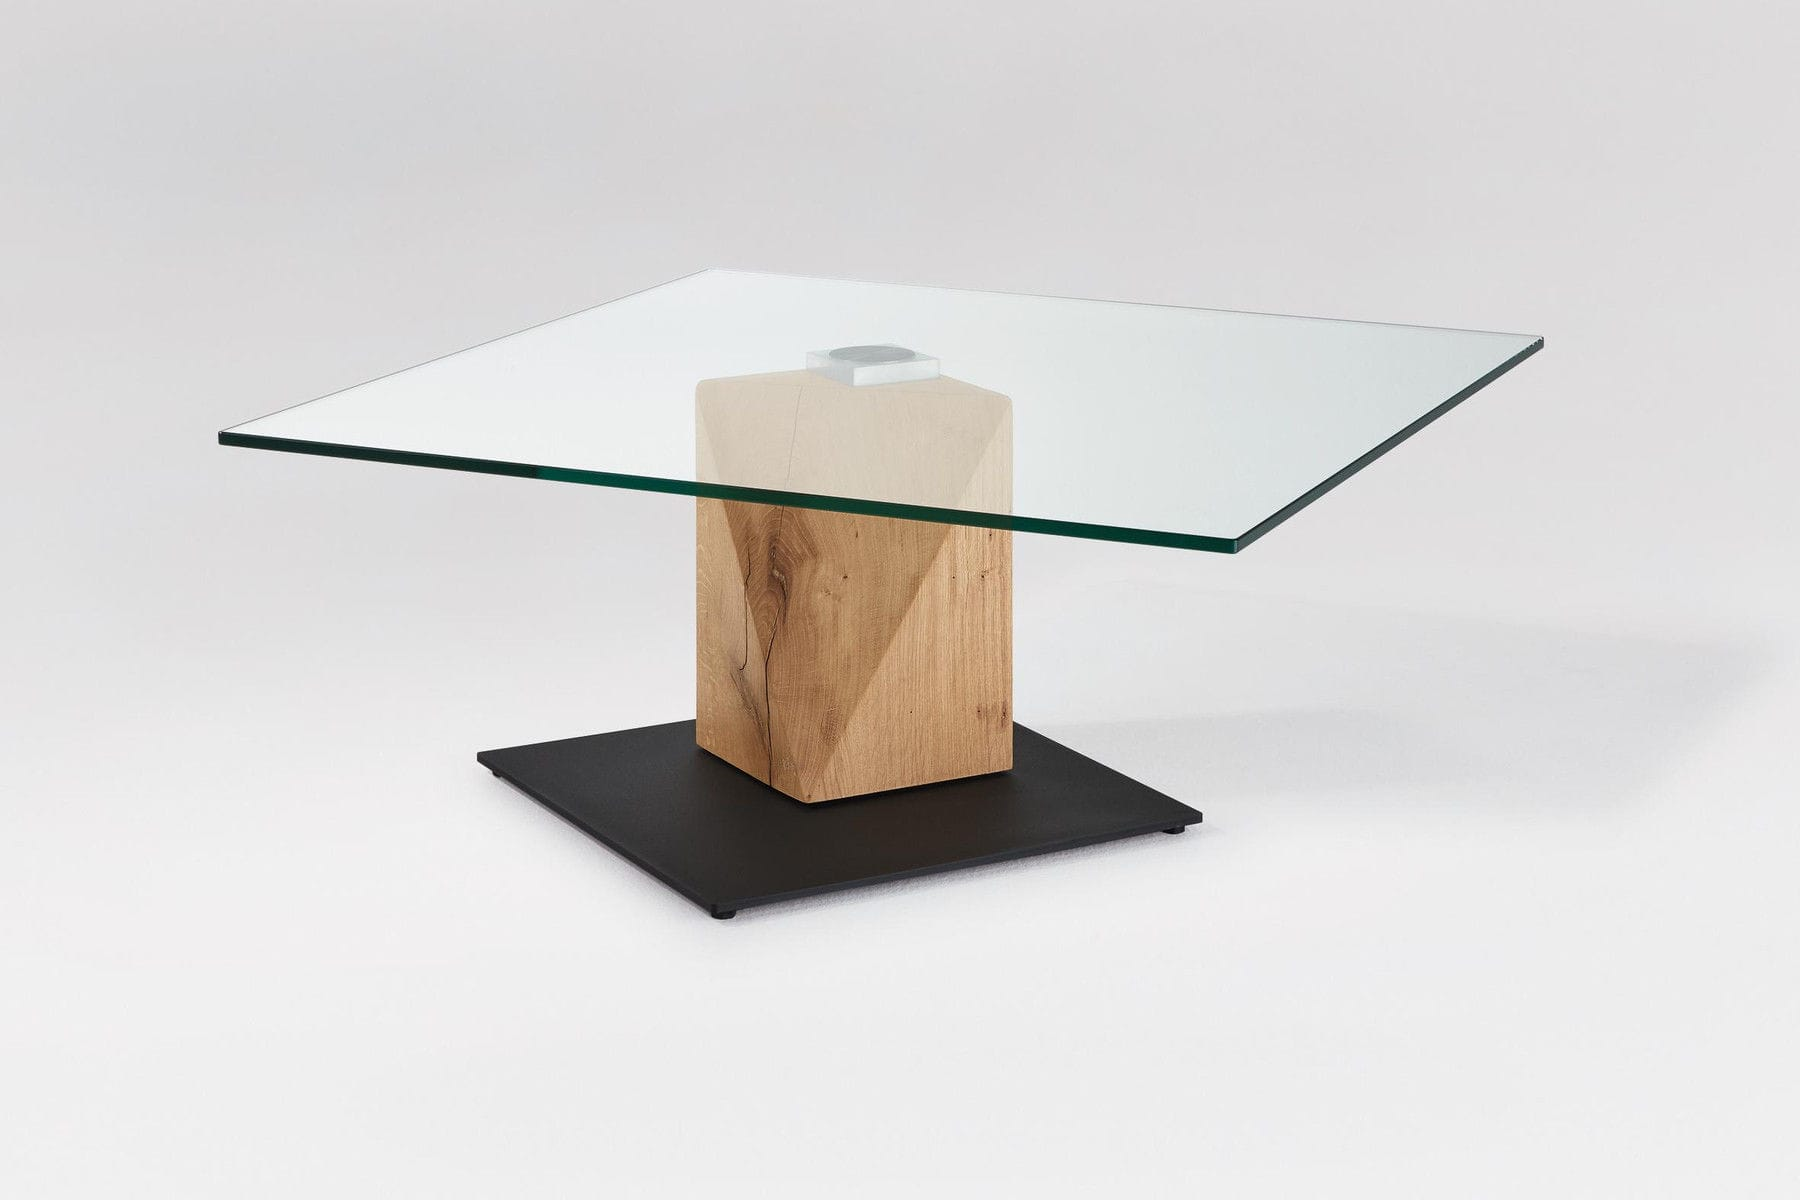 Couchtisch Mustering Contemporary Coffee Table Frosted Glass Rectangular Square